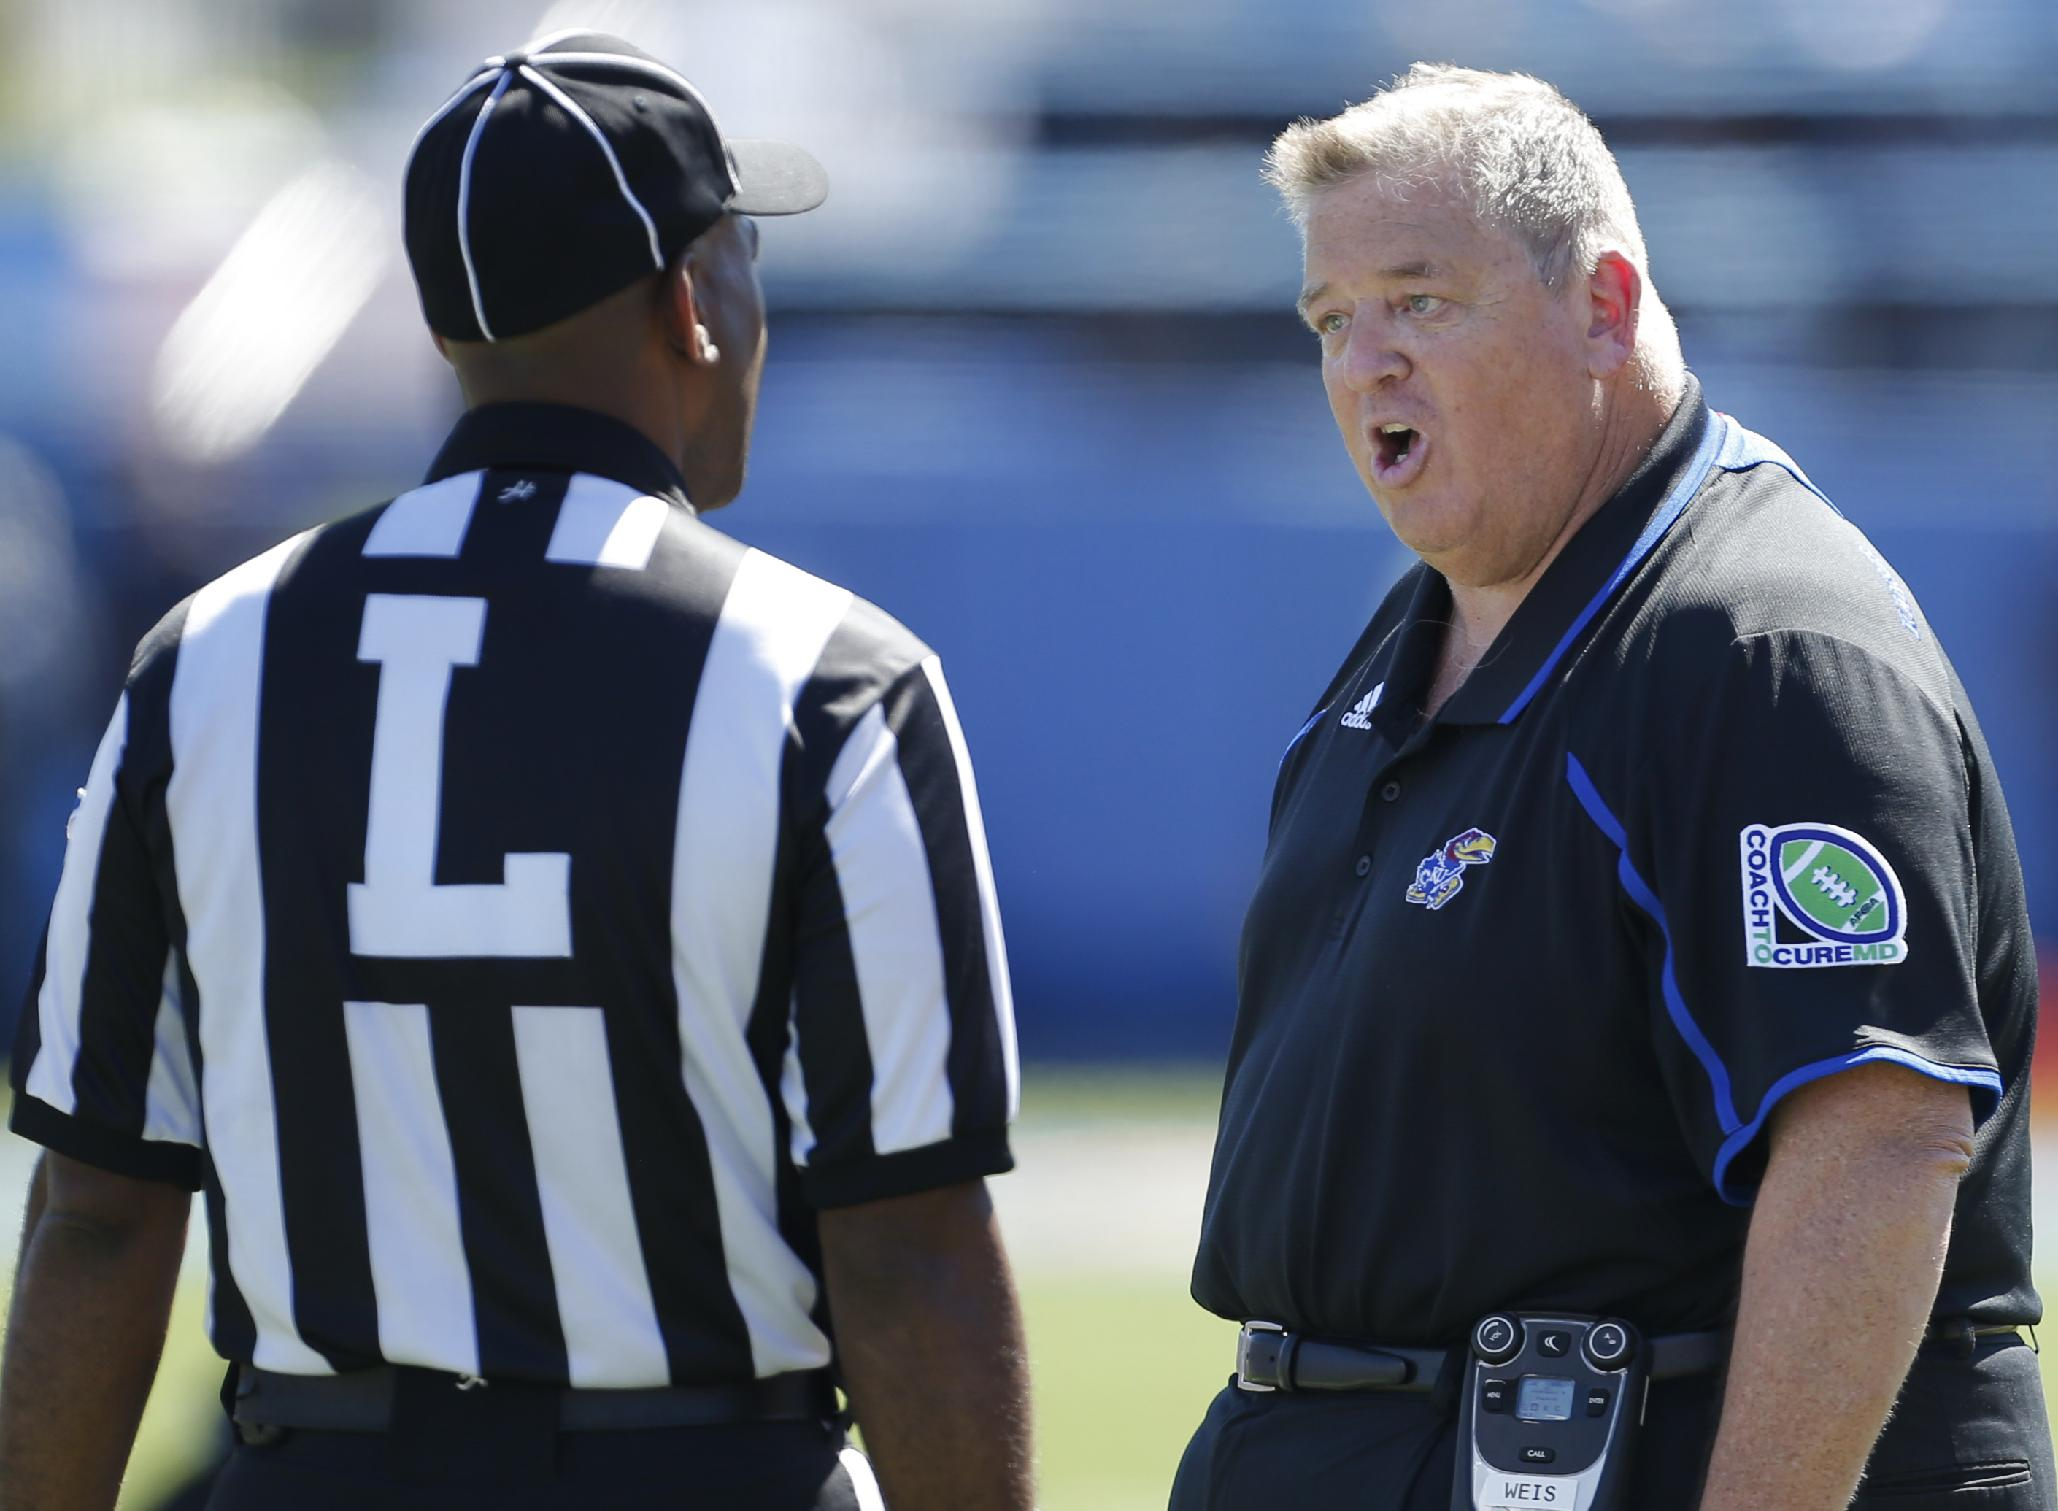 Kansas coach Charlie Weis, right, makes his case with line judge Keith Garmond, left, during the second half of an NCAA college football game against Louisiana Tech in Lawrence, Kan., Saturday, Sept. 21, 2013. Weis wanted a fumble ruled a touchback on the previous play. Kansas defeated Louisiana Tech 13-10